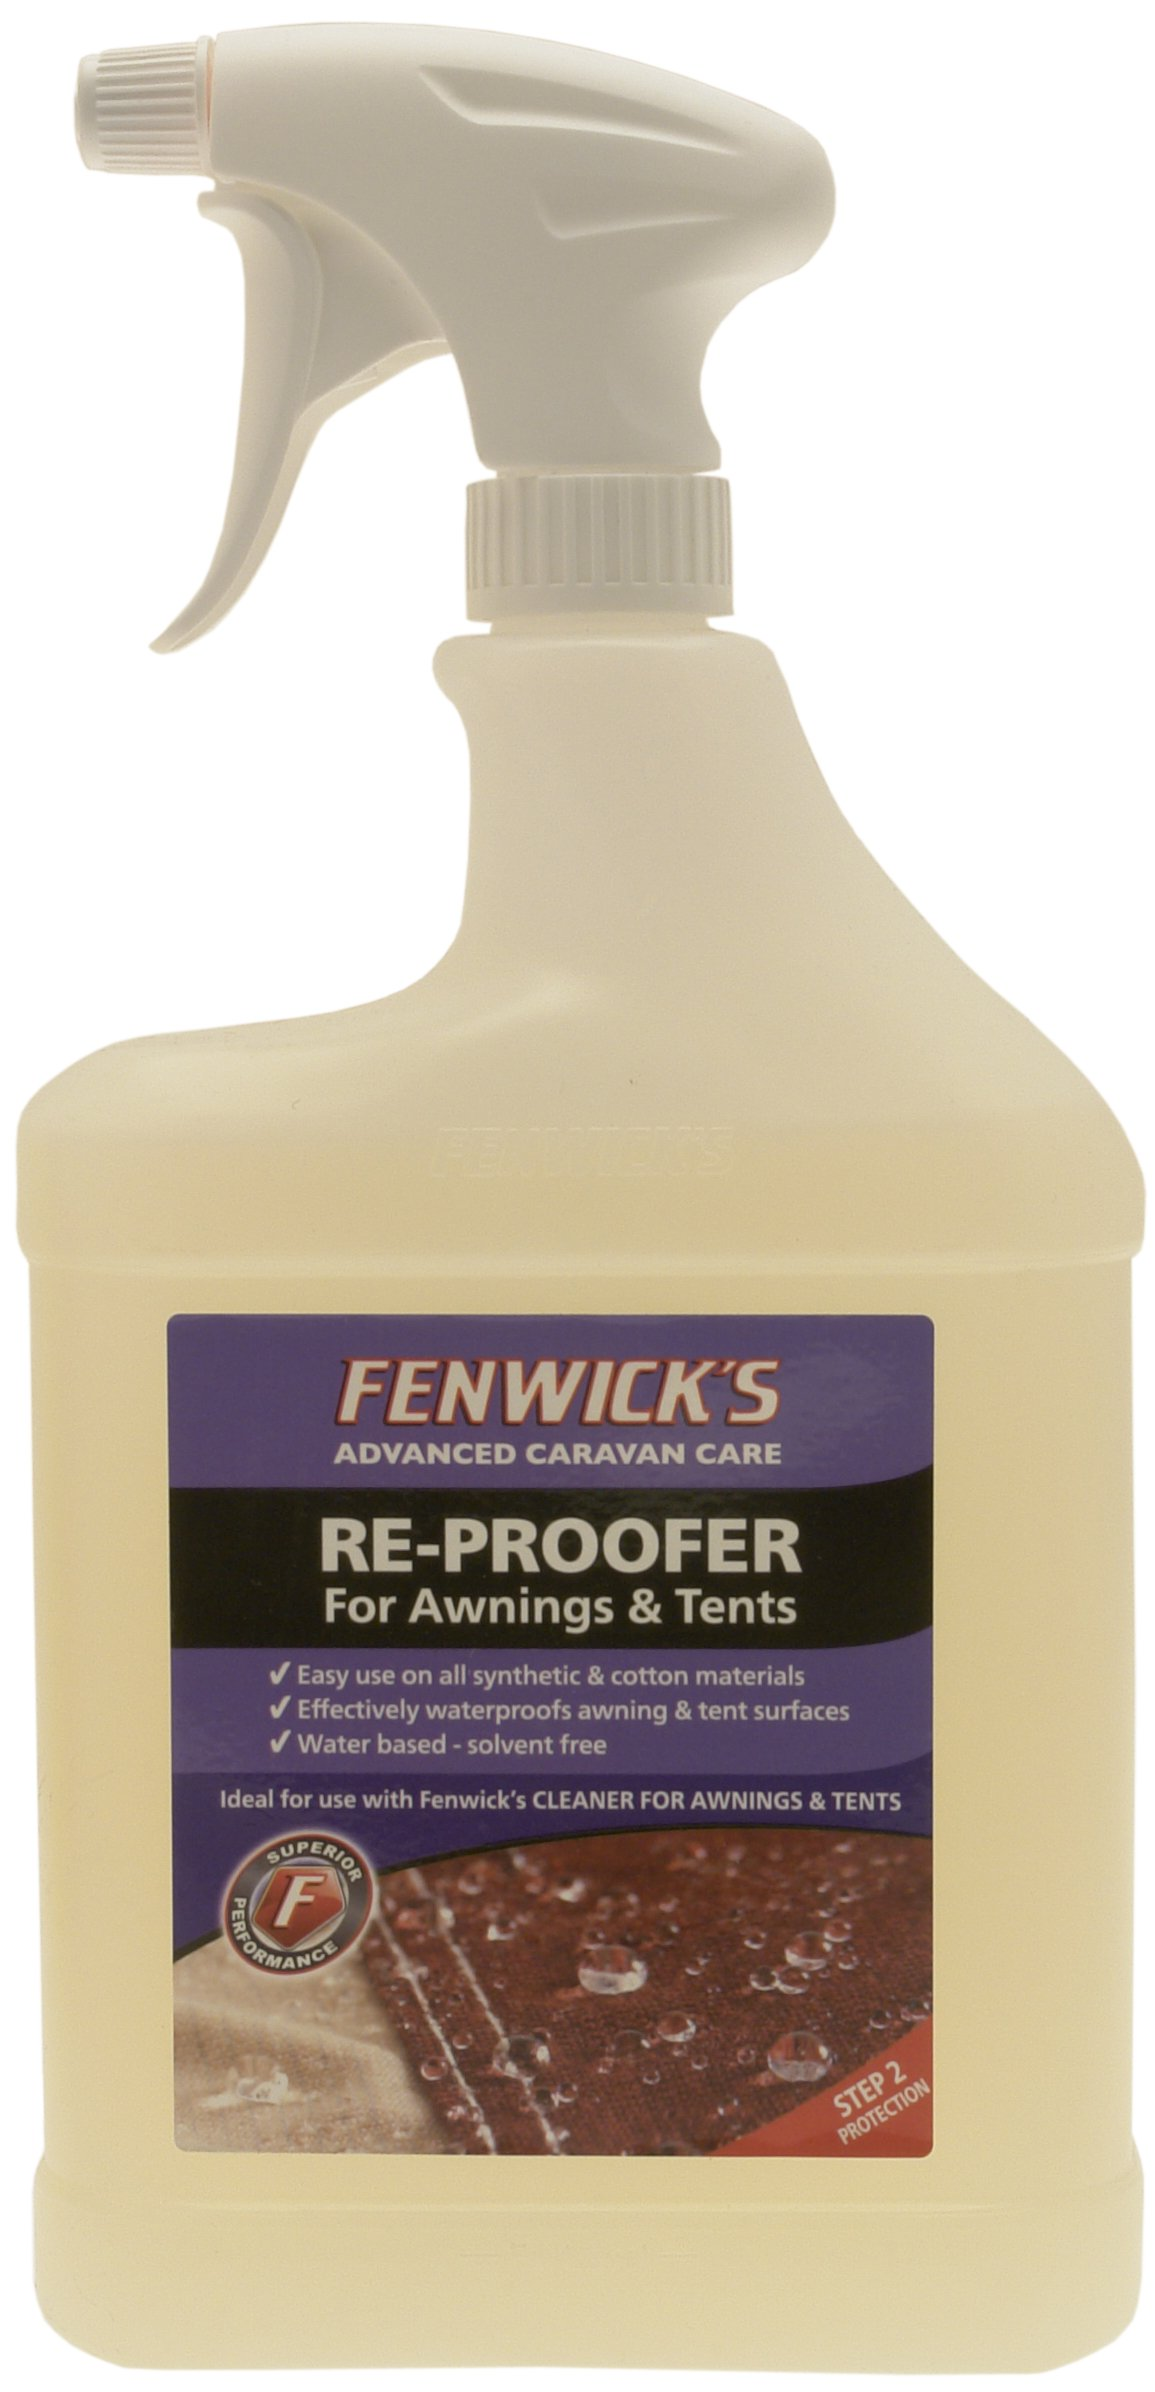 Fenwicks Reproofer for Awnings & Tents